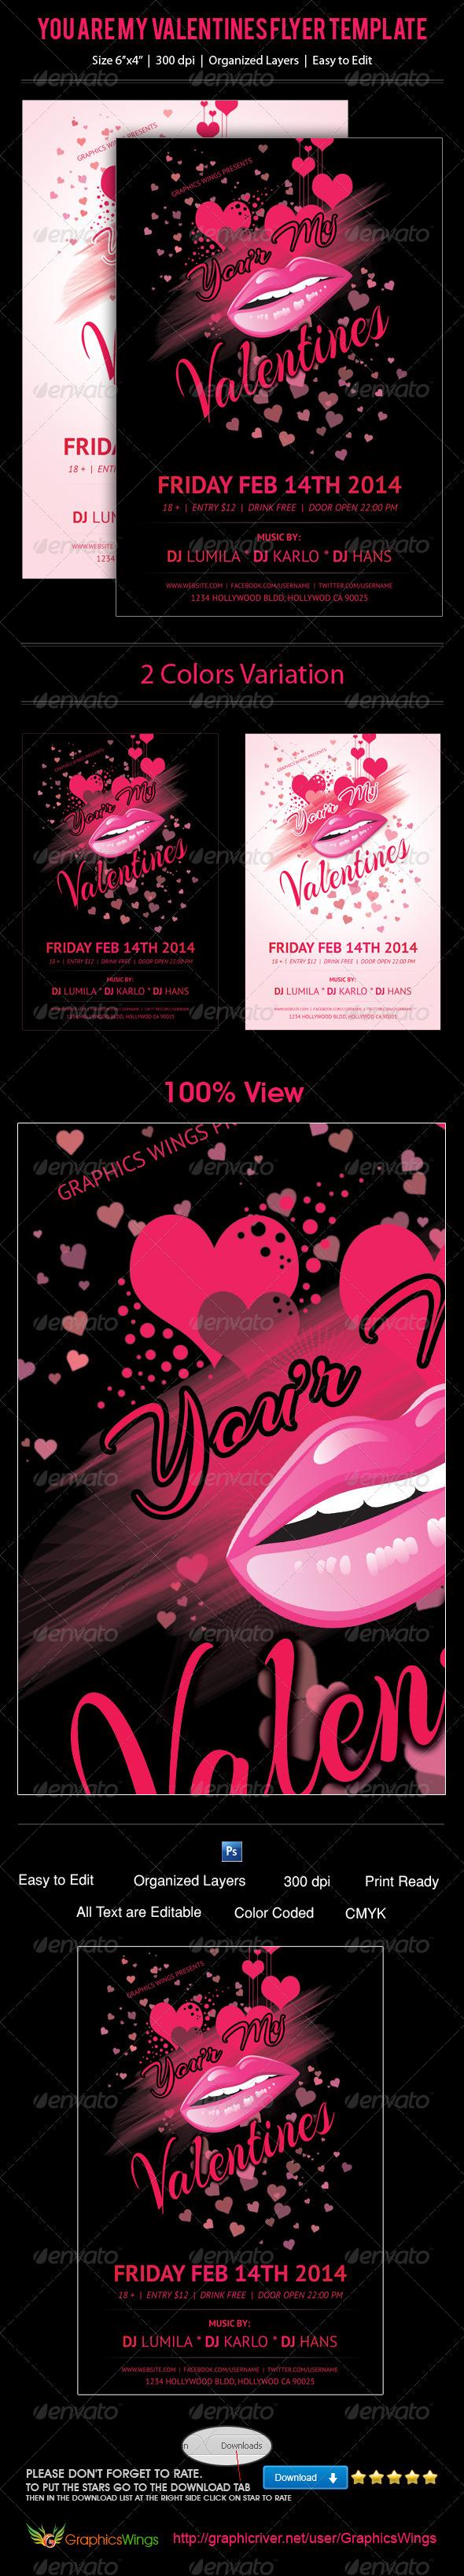 GraphicRiver You Are My Valentines Flyer Template 6642122